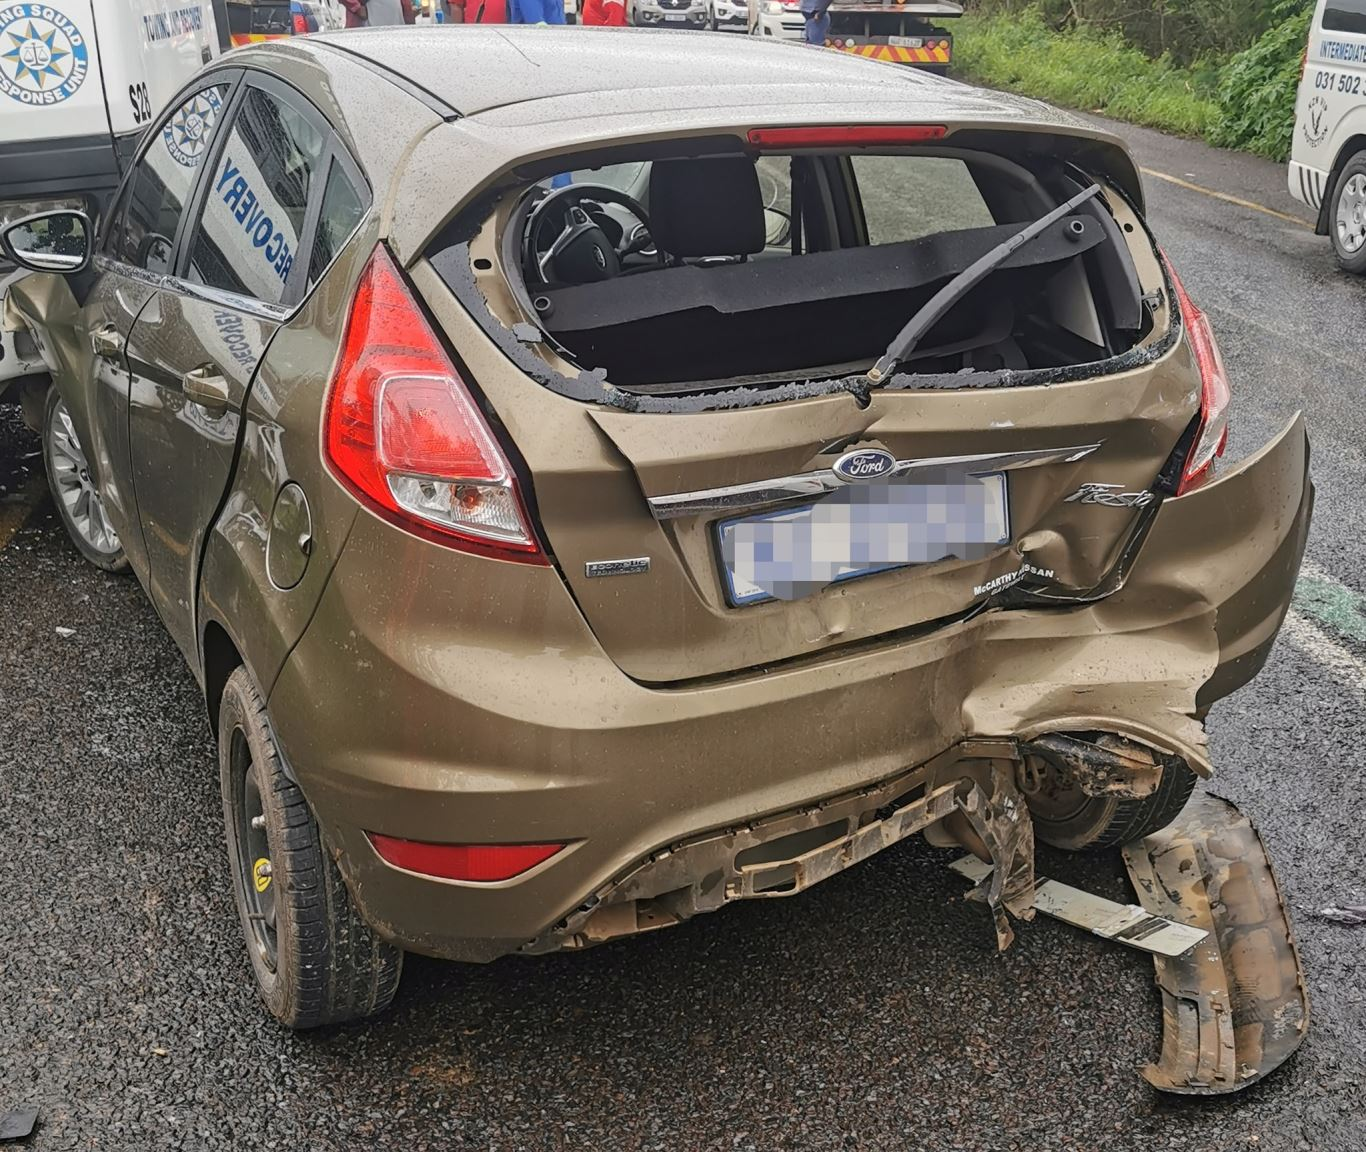 Four Injured In Secondary Collision in Cottonlands, KZN